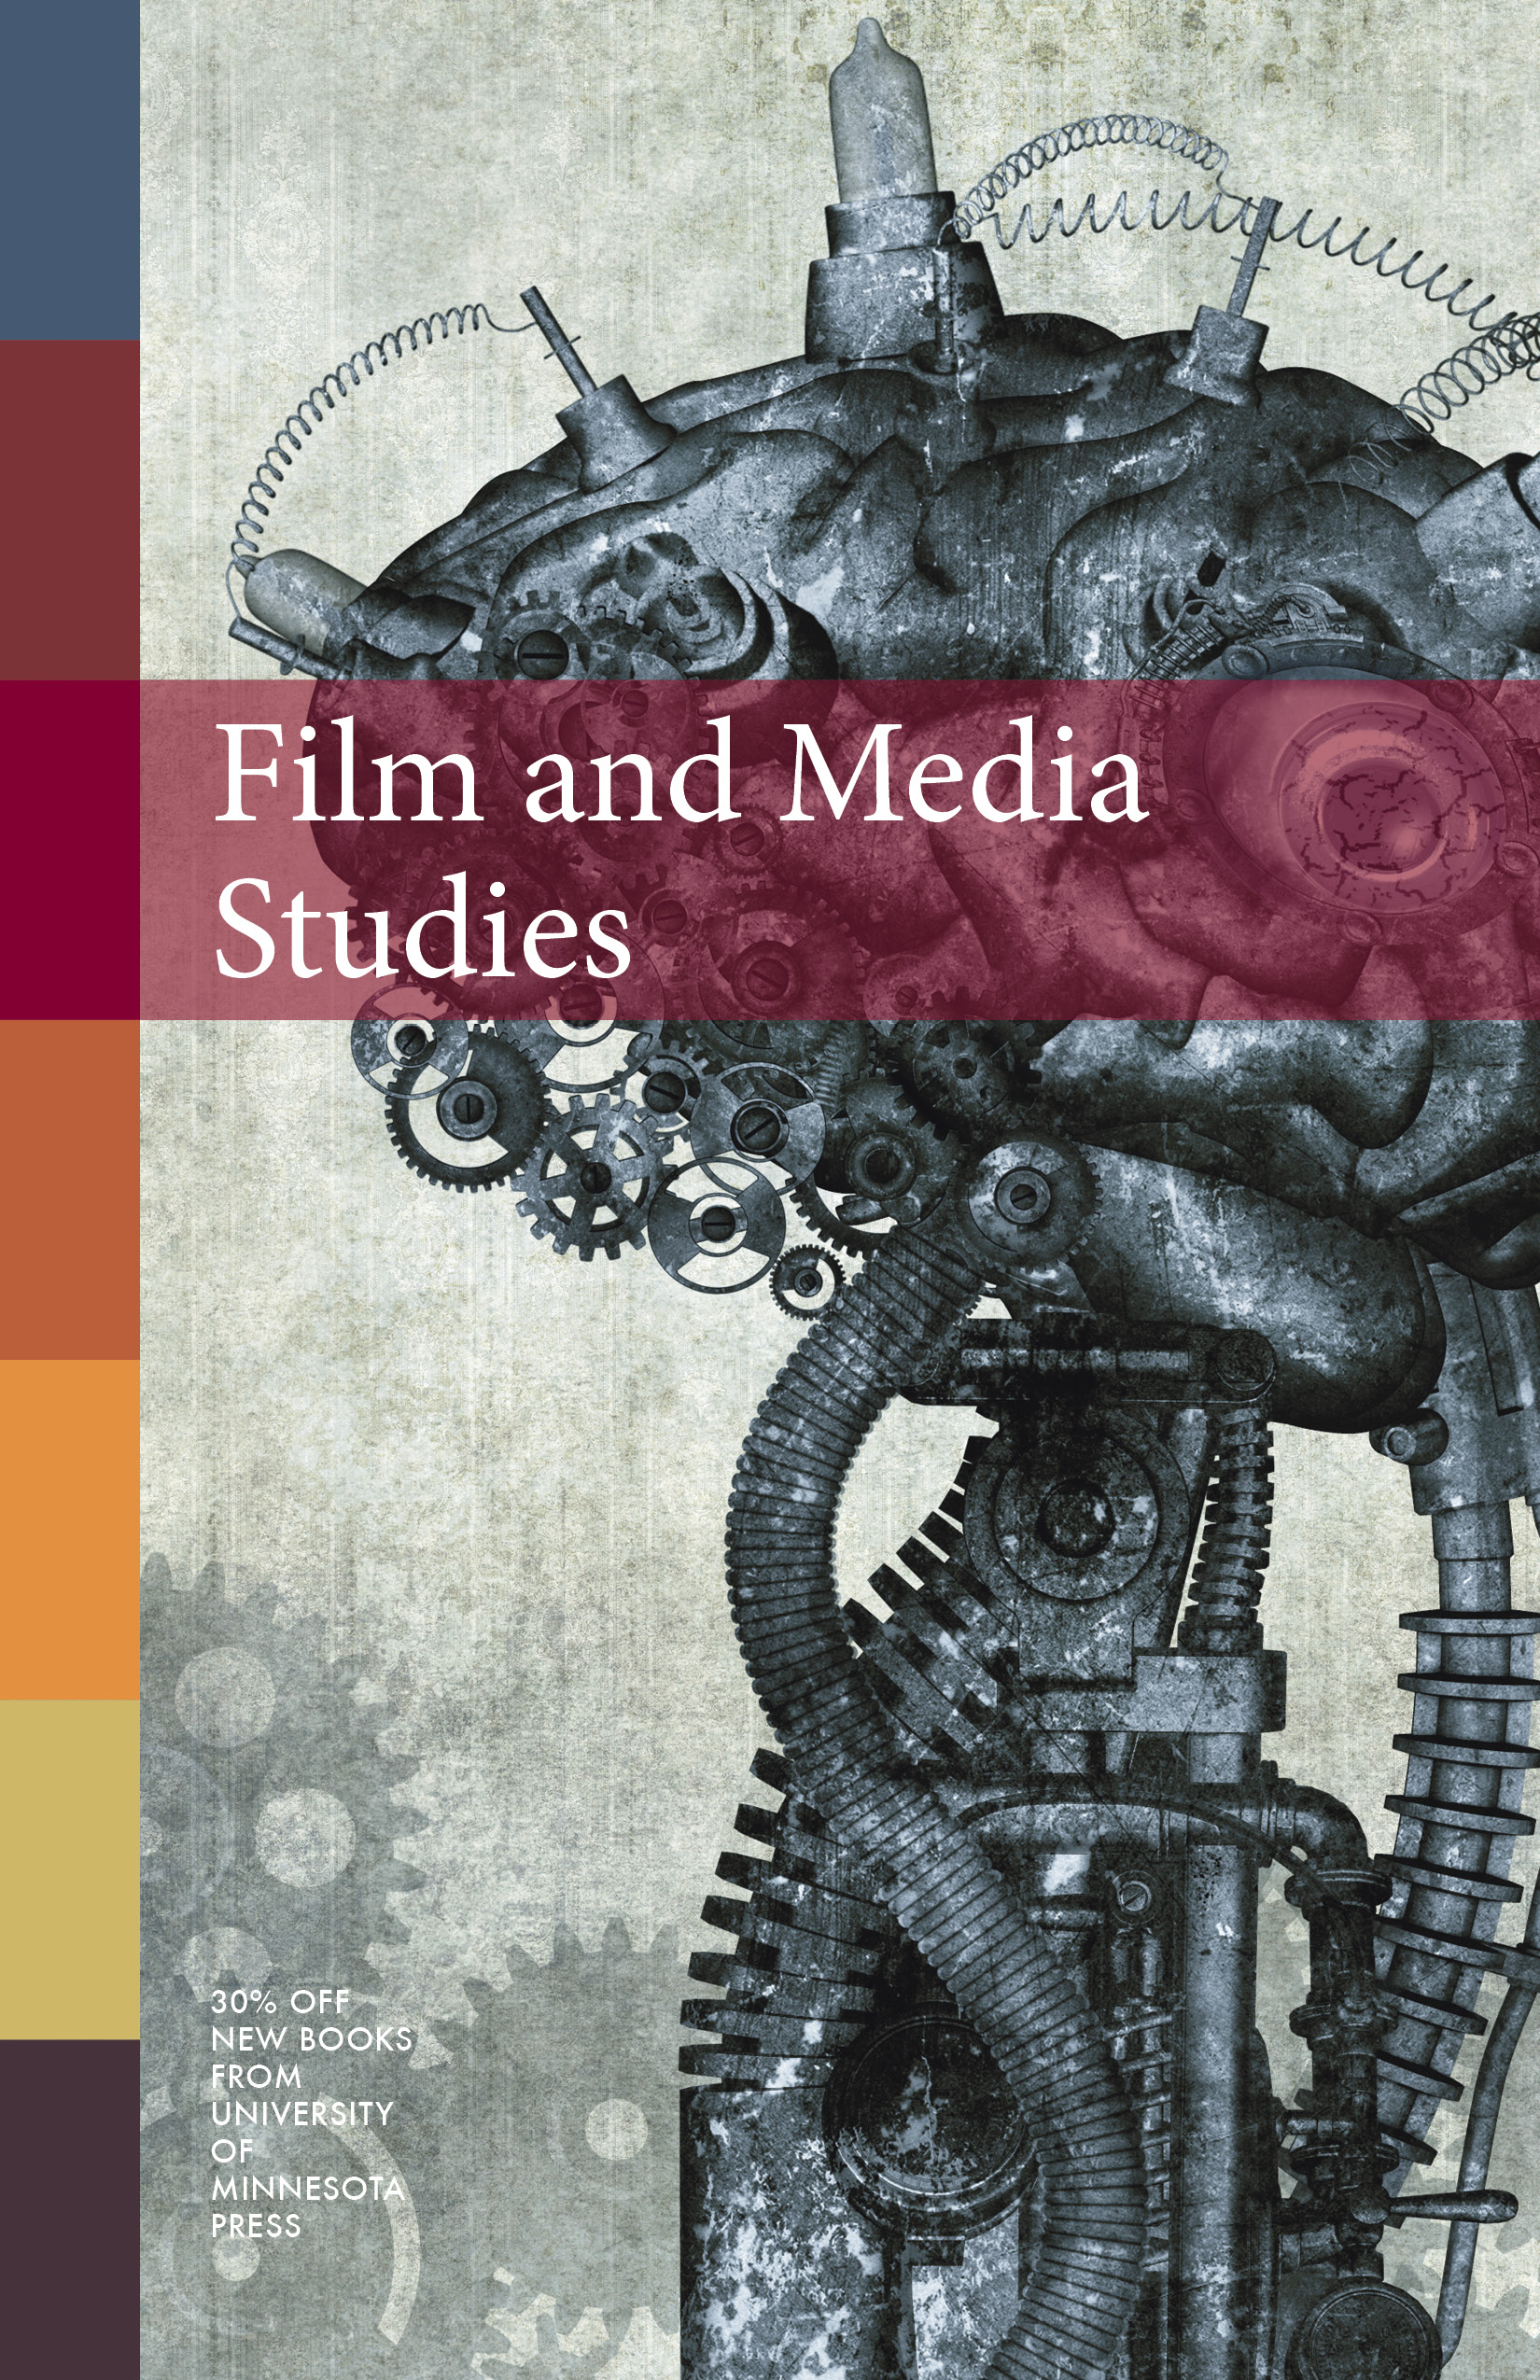 Cover for the University of Minnesota Press Film and Media Studies catalog.